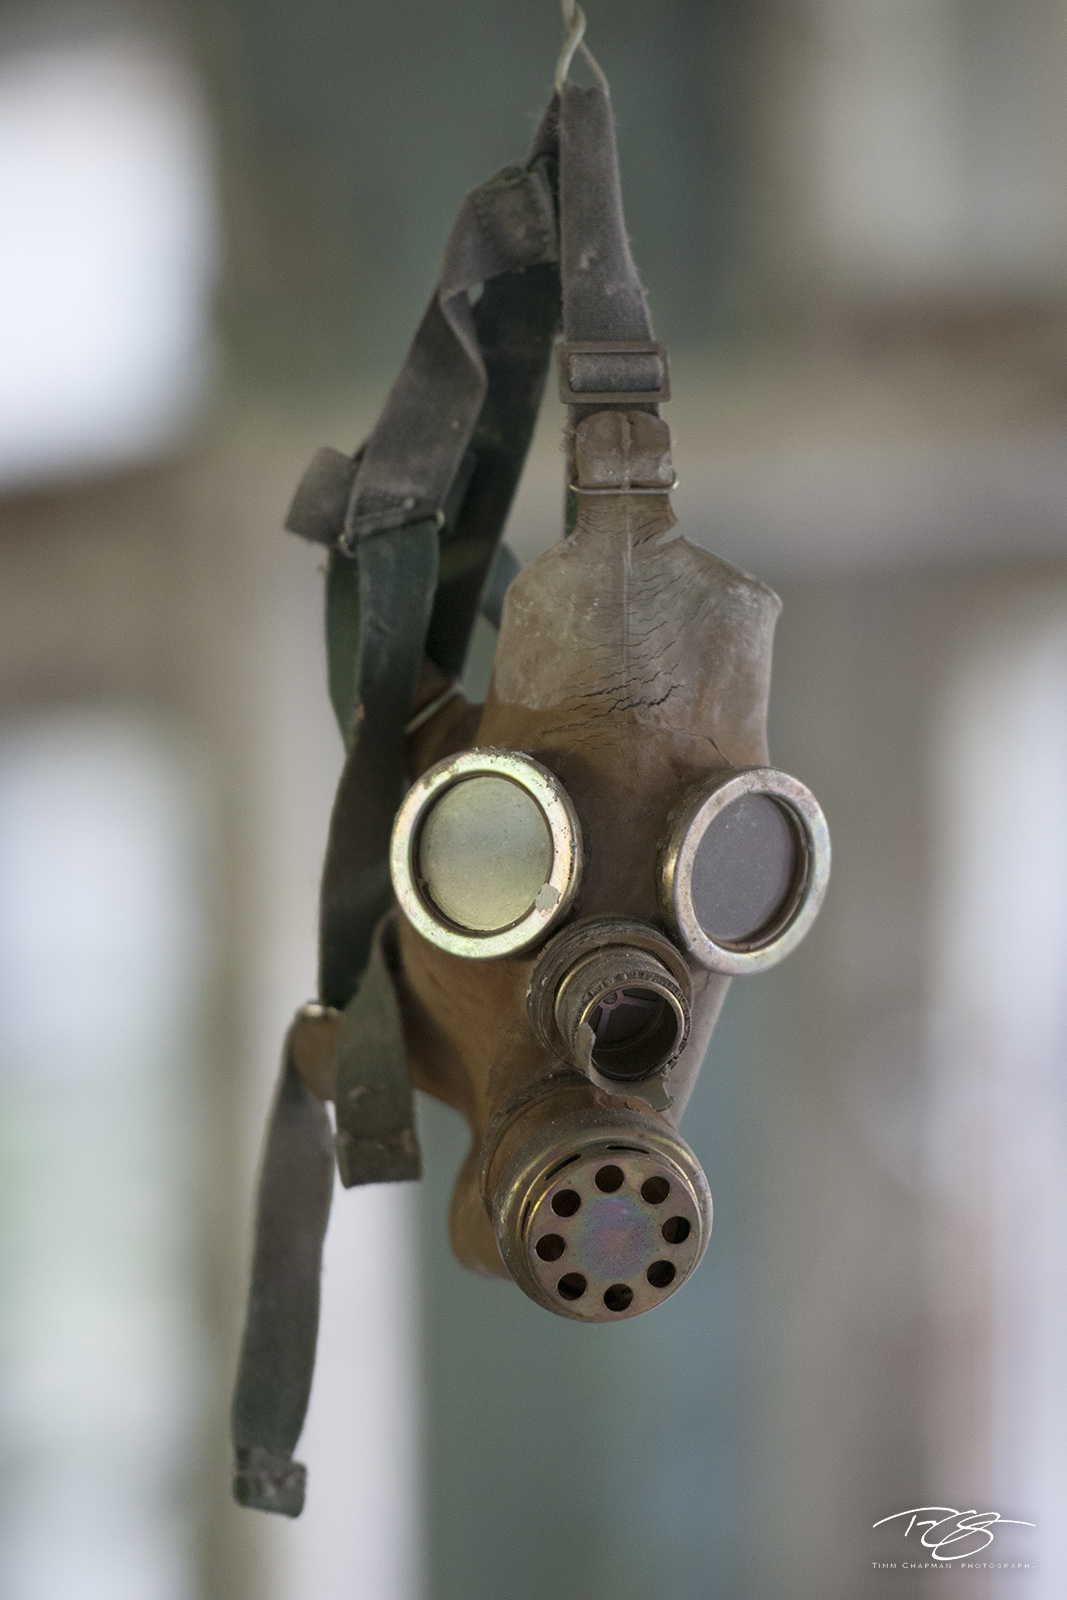 chernobyl, chornobyl, pripyat, exclusion zone, abandoned, forgotten, wasteland, radioactive, gas mask, cold war, russia, cccp, photo